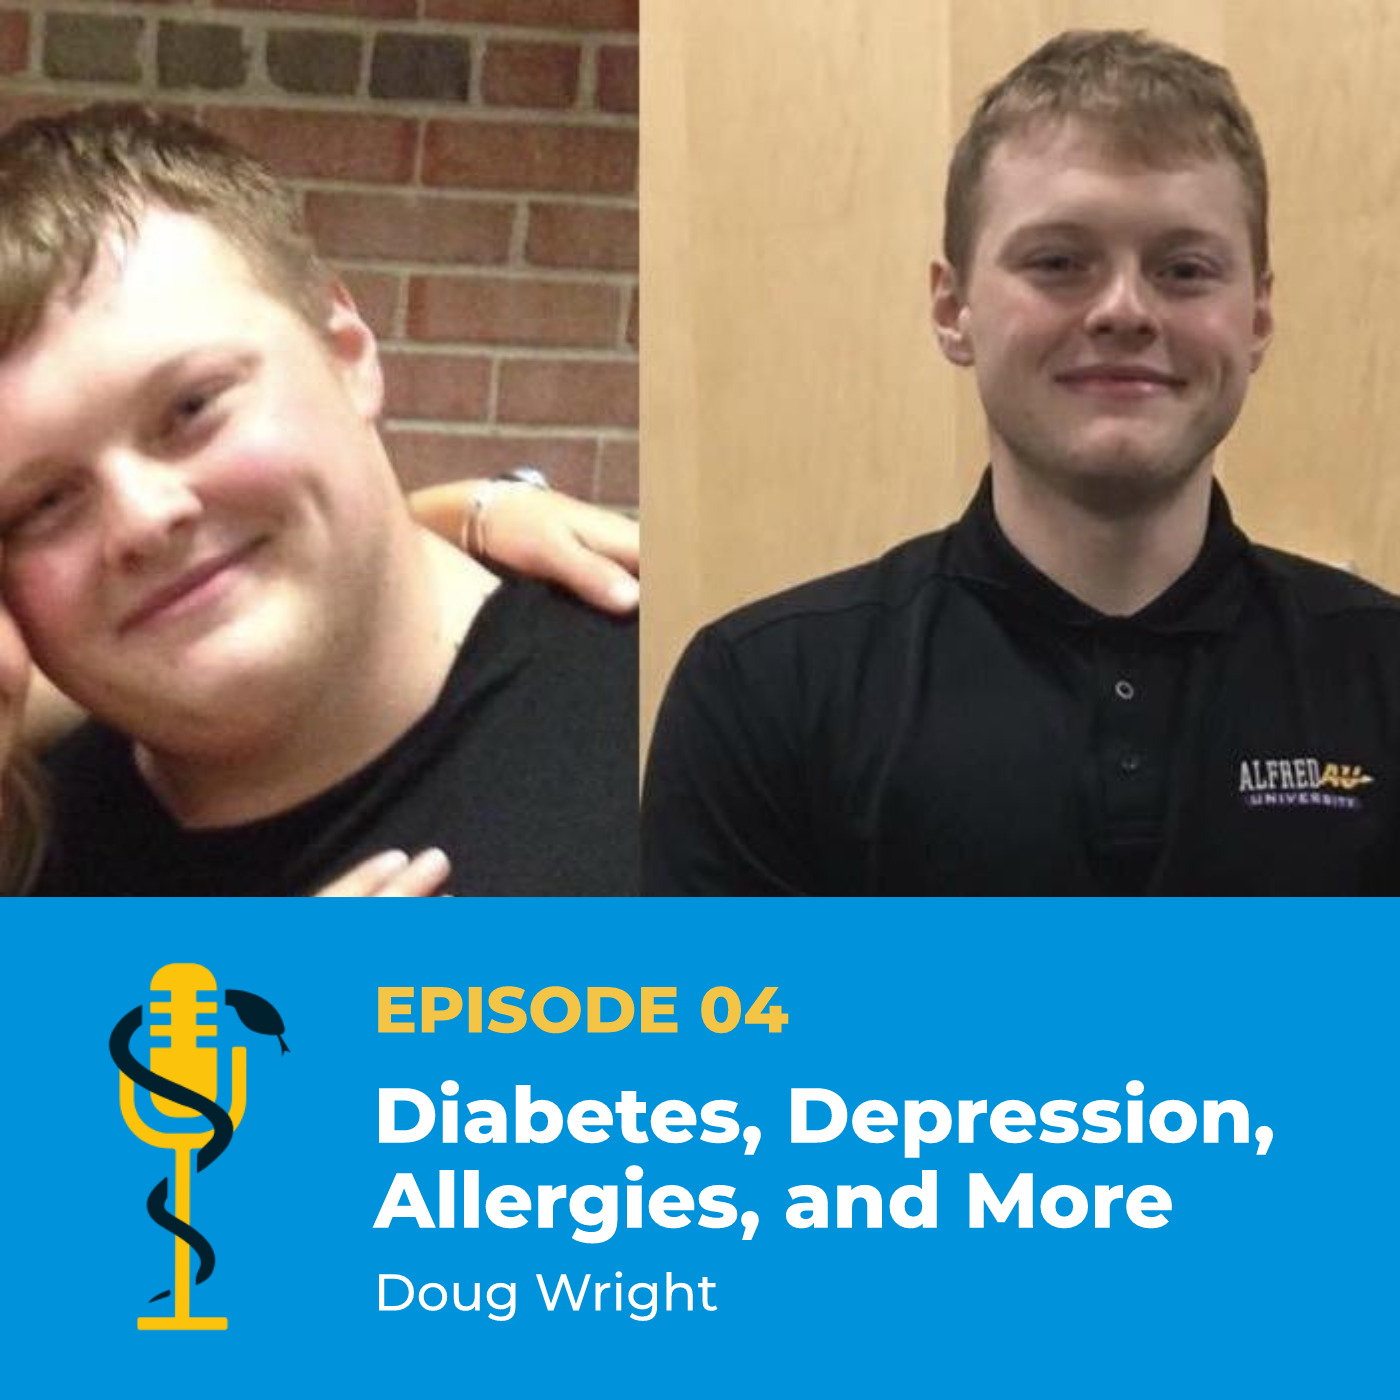 Ep.04: Diabetes, Depression, Allergies, and More with Doug Wright